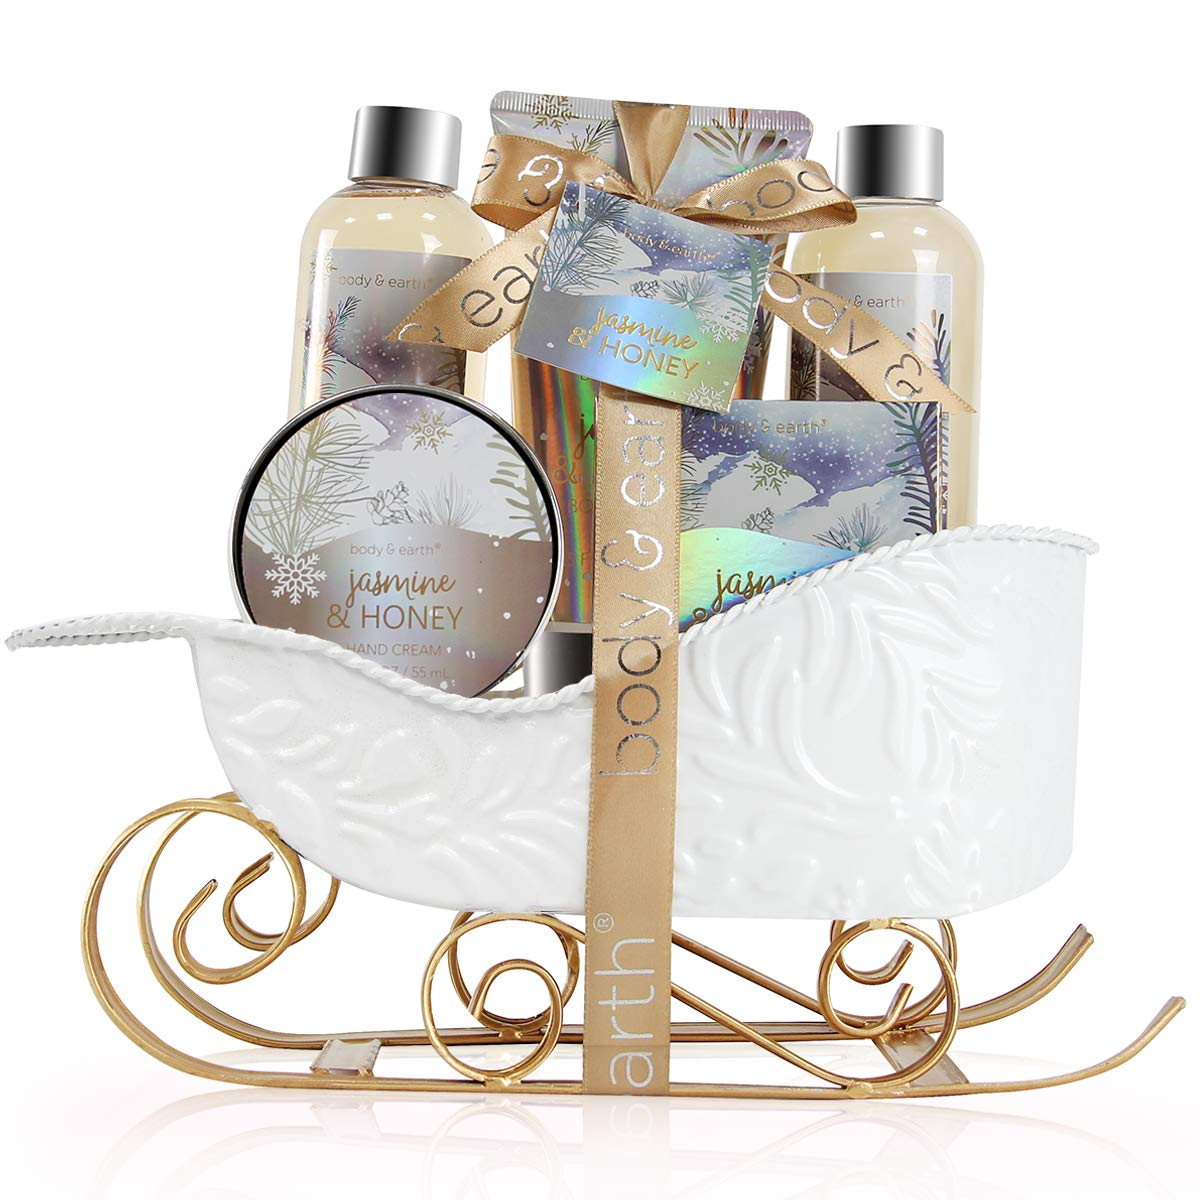 Bath and Body Set - Body & Earth Women Gifts Spa Set with Jasmine & Honey Scent, Includes Bubble Bath, Shower Gel, Body Lotion and Hand Cream. Perfect Gift Basket for Women : Beauty